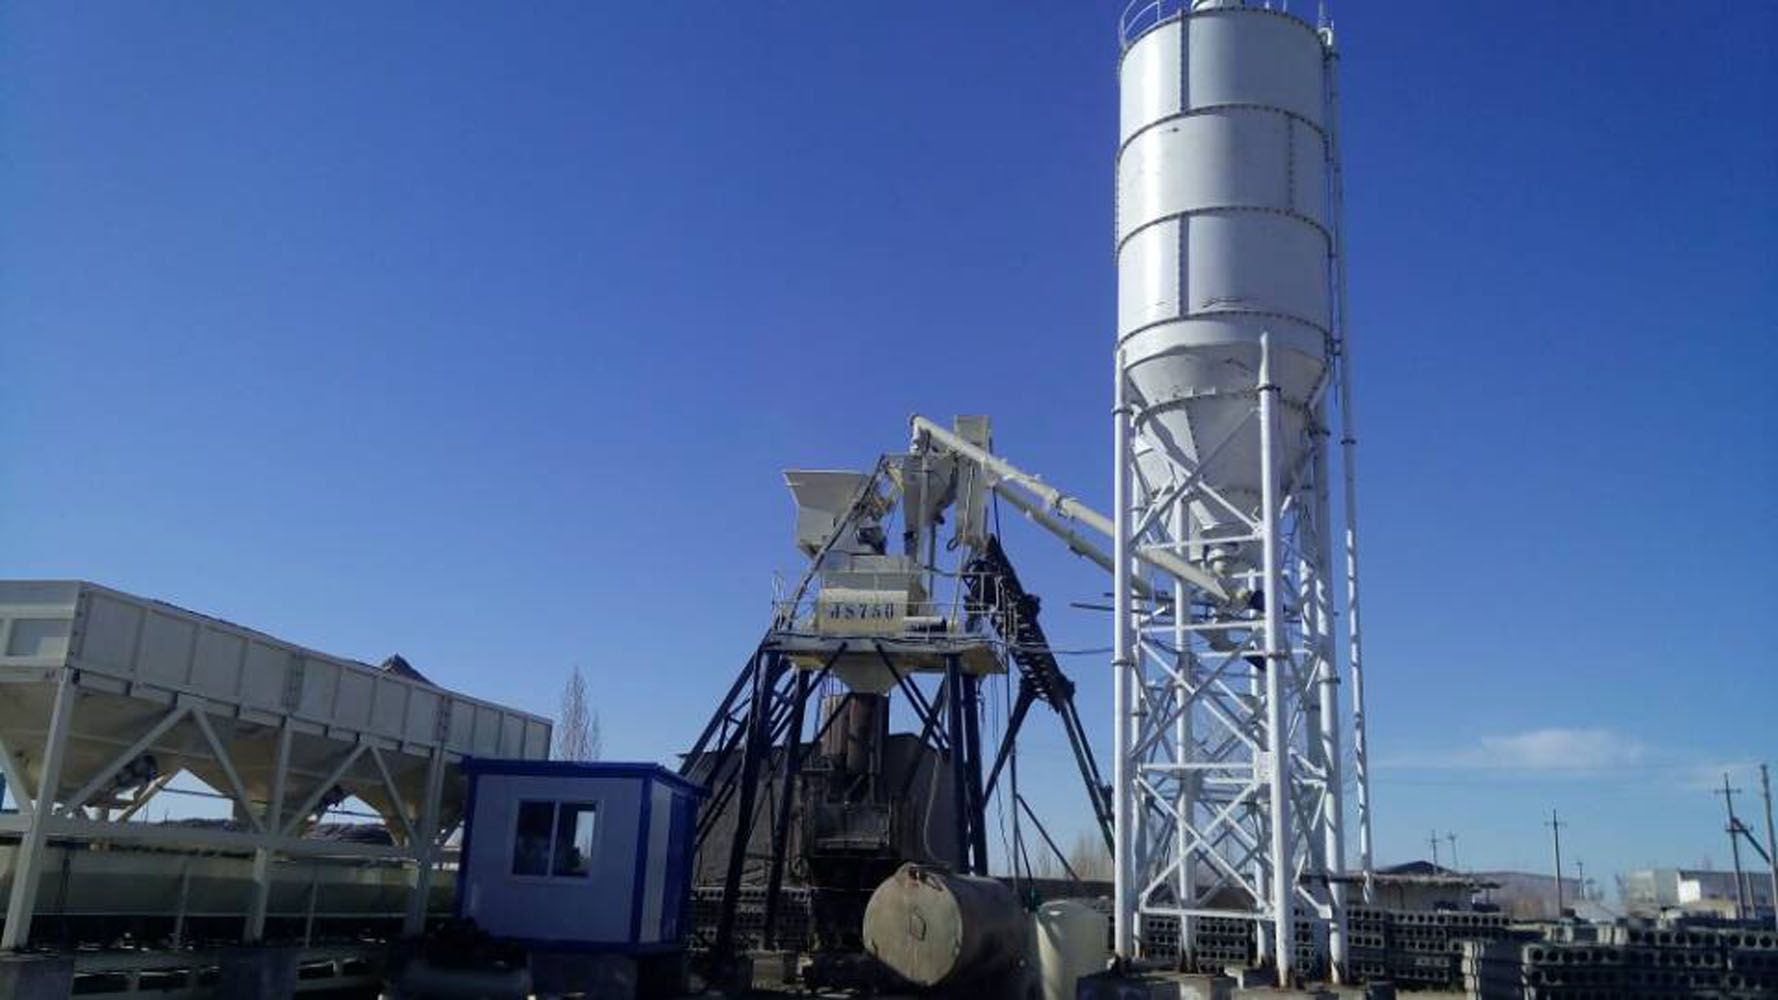 HZS35 concrete batching plant is a small concrete mixing